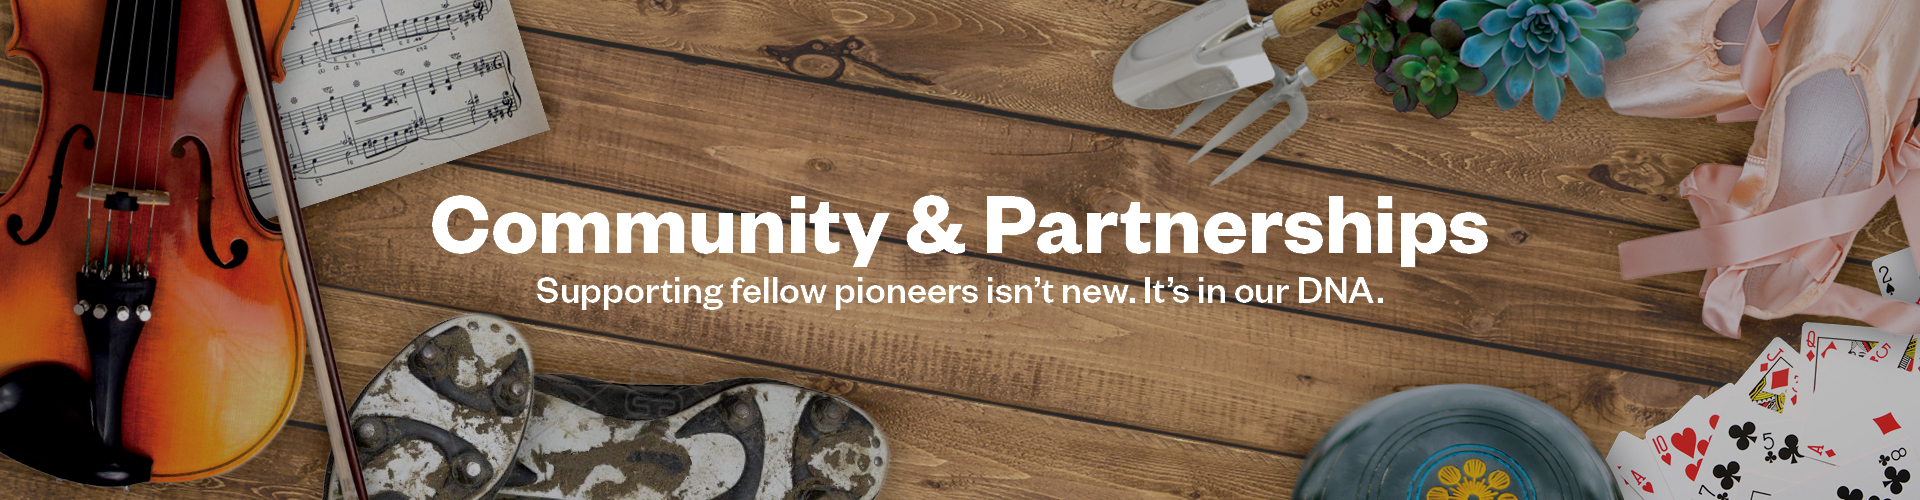 Community & Partnerships Website Banner 1920x500 (with text)